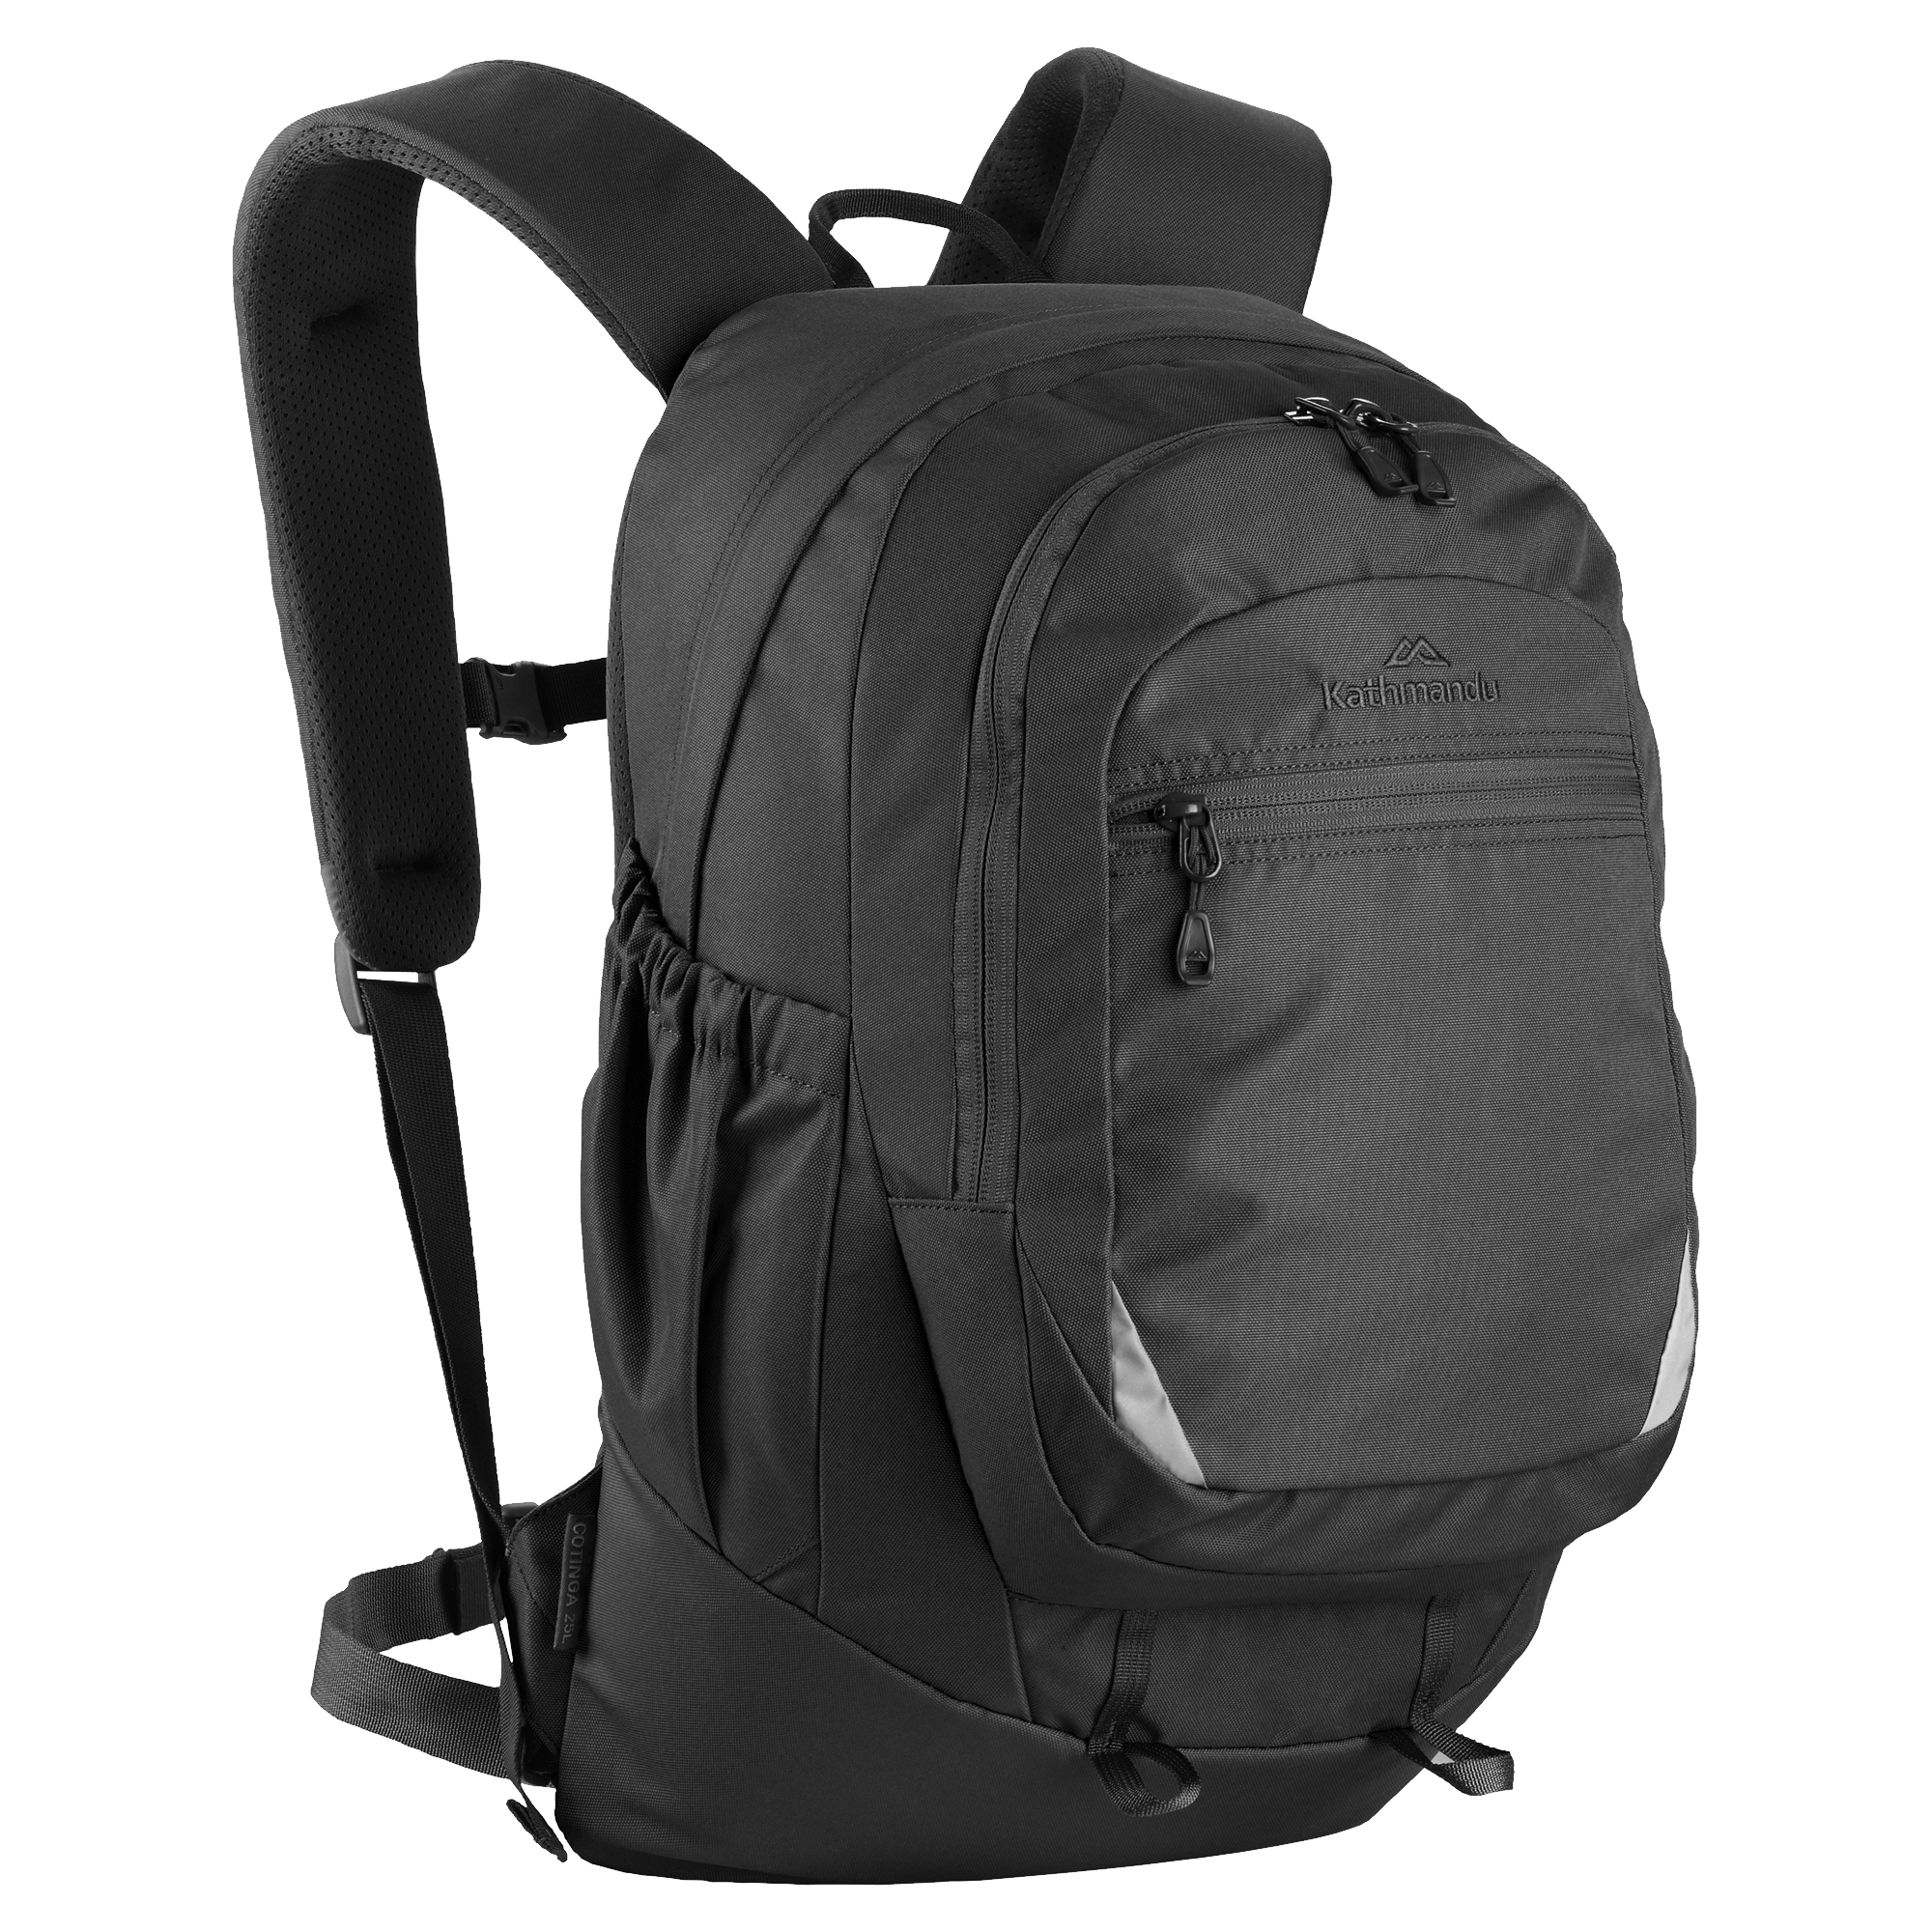 Hike clipart travel backpack. Png image